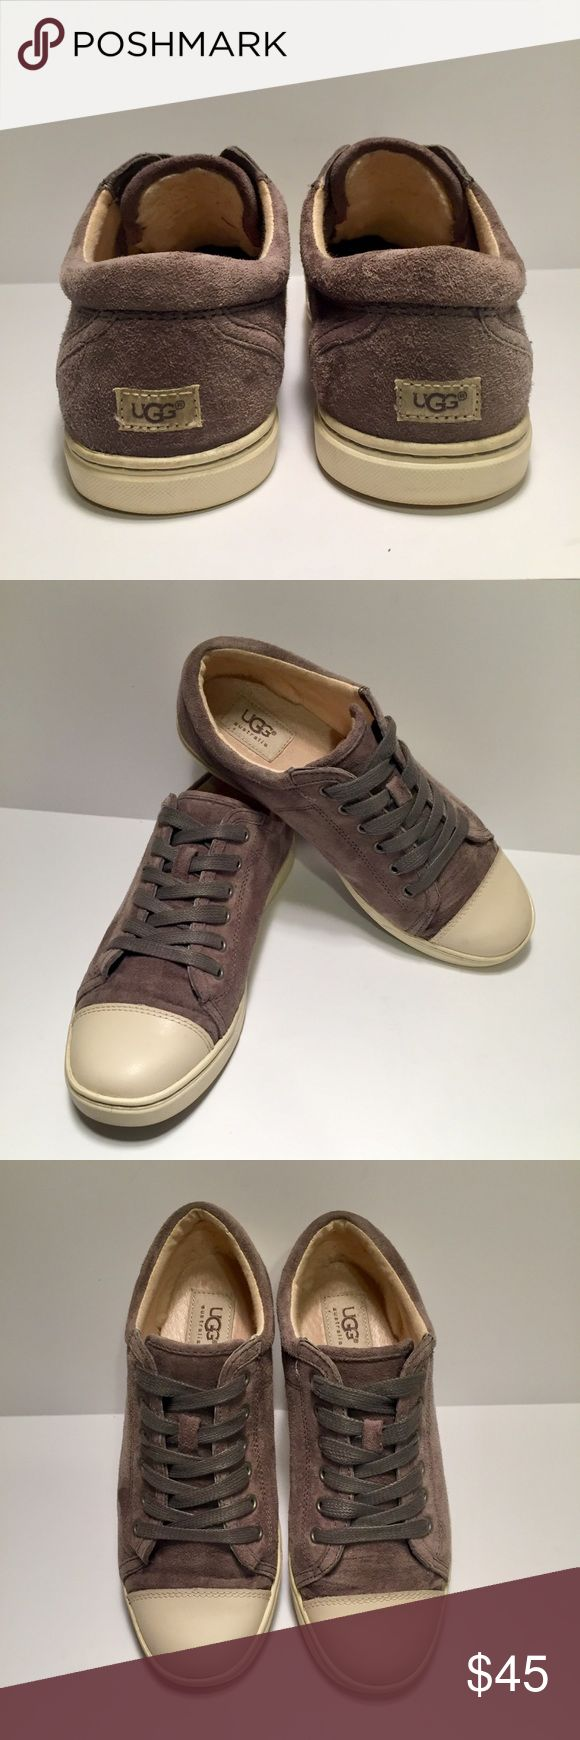 UGG sneakers UGG sneakers in grey suede. Inside heel and tongue lining are made of soft UGGpure wool. Rubber soles. In great pre-owned condition - worn only a few times. UGG Shoes Sneakers